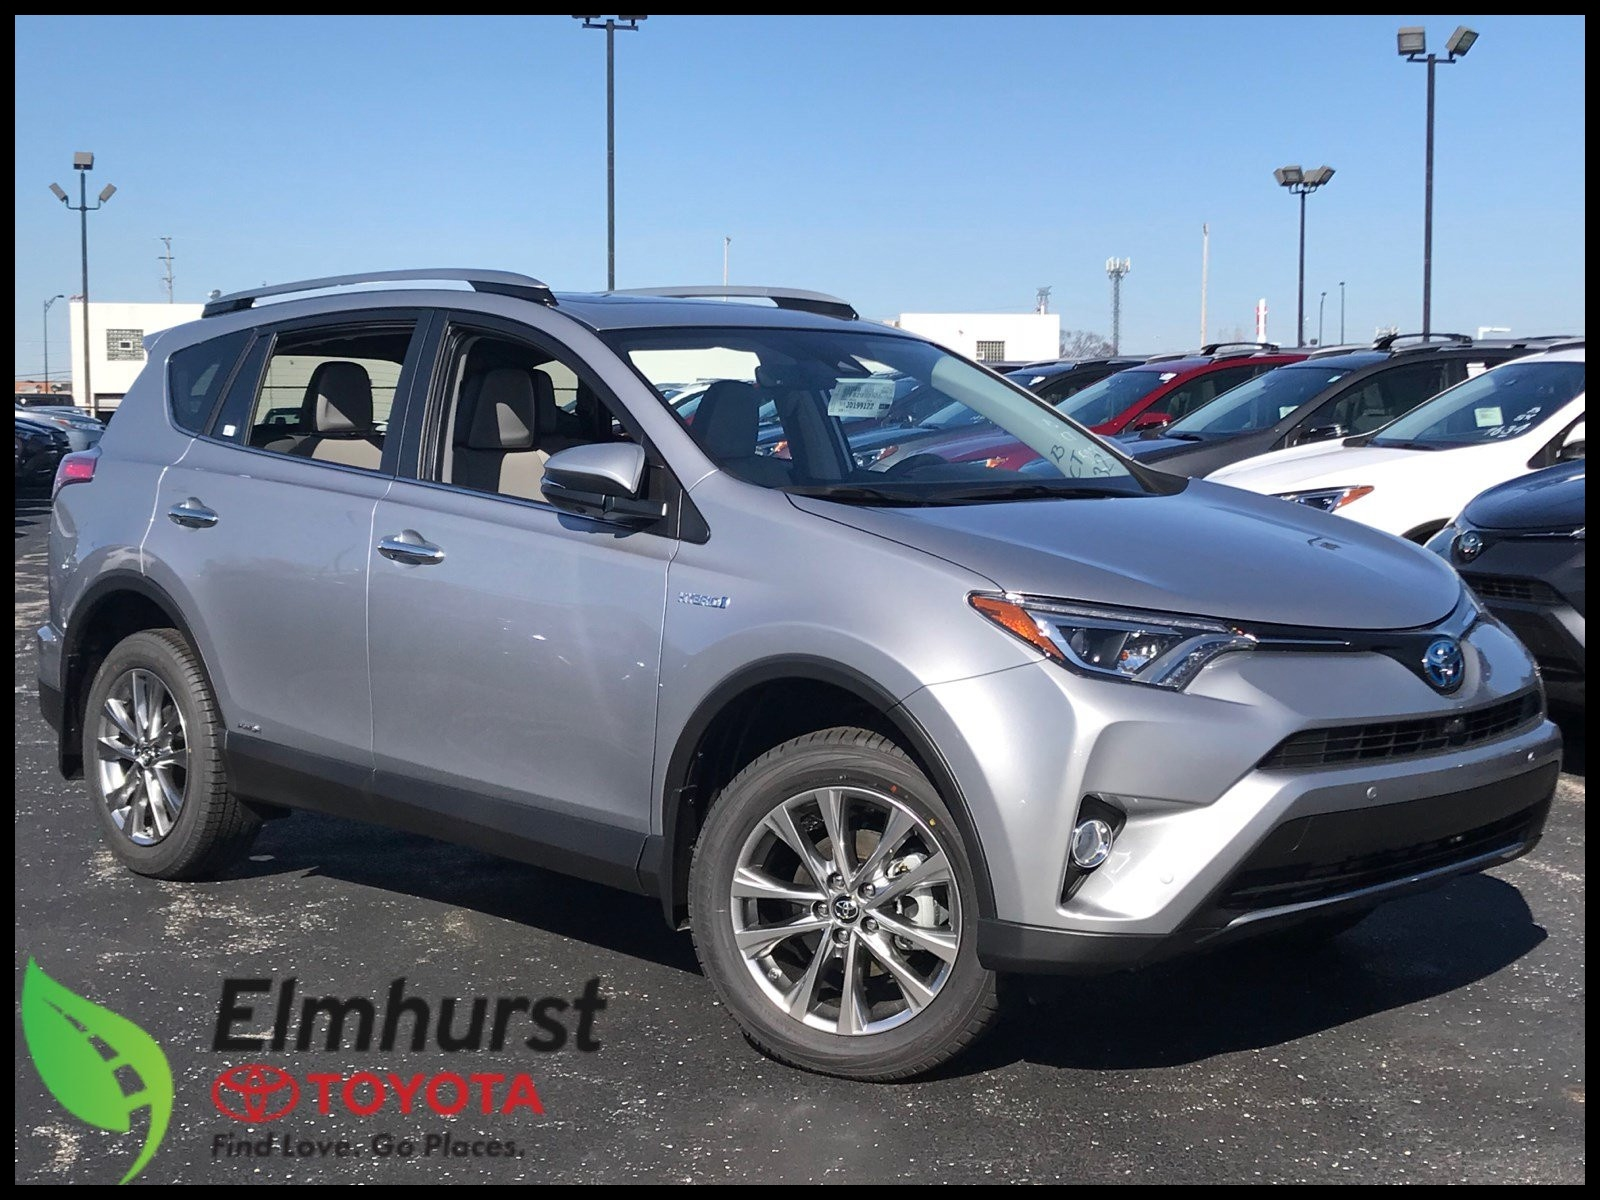 Toyota Rav4 Floor Mats Awesome New 2018 toyota Rav4 Hybrid Limited Sport Utility In Elmhurst